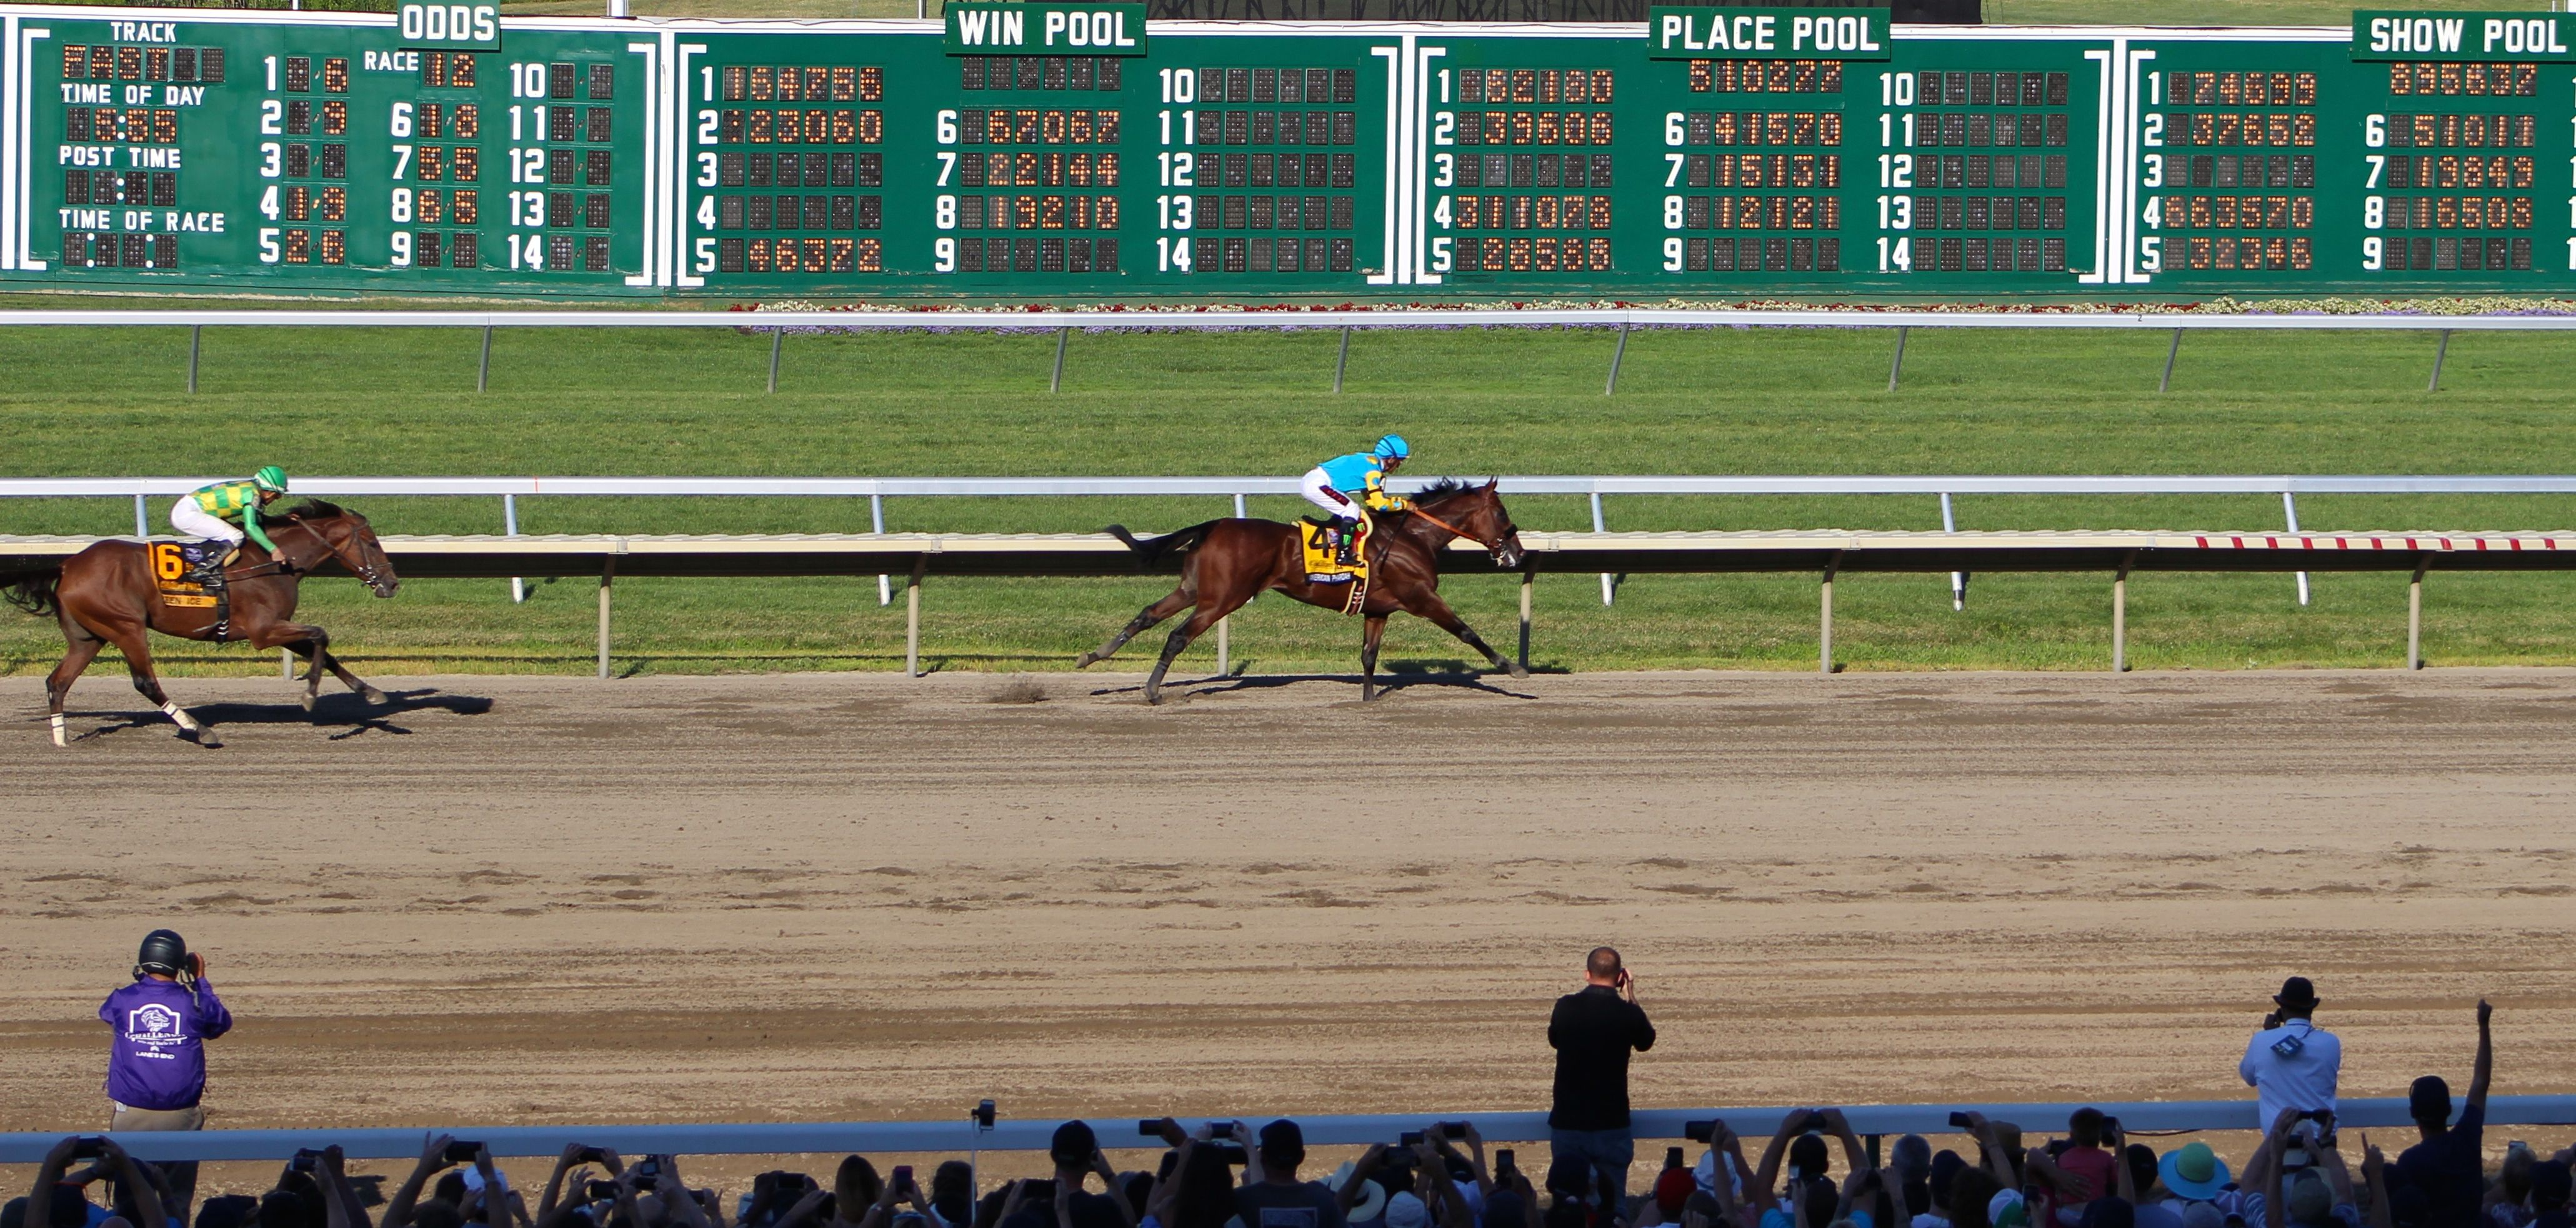 Our Pics Of American Pharoah Haskell Invitational Win Pool Went